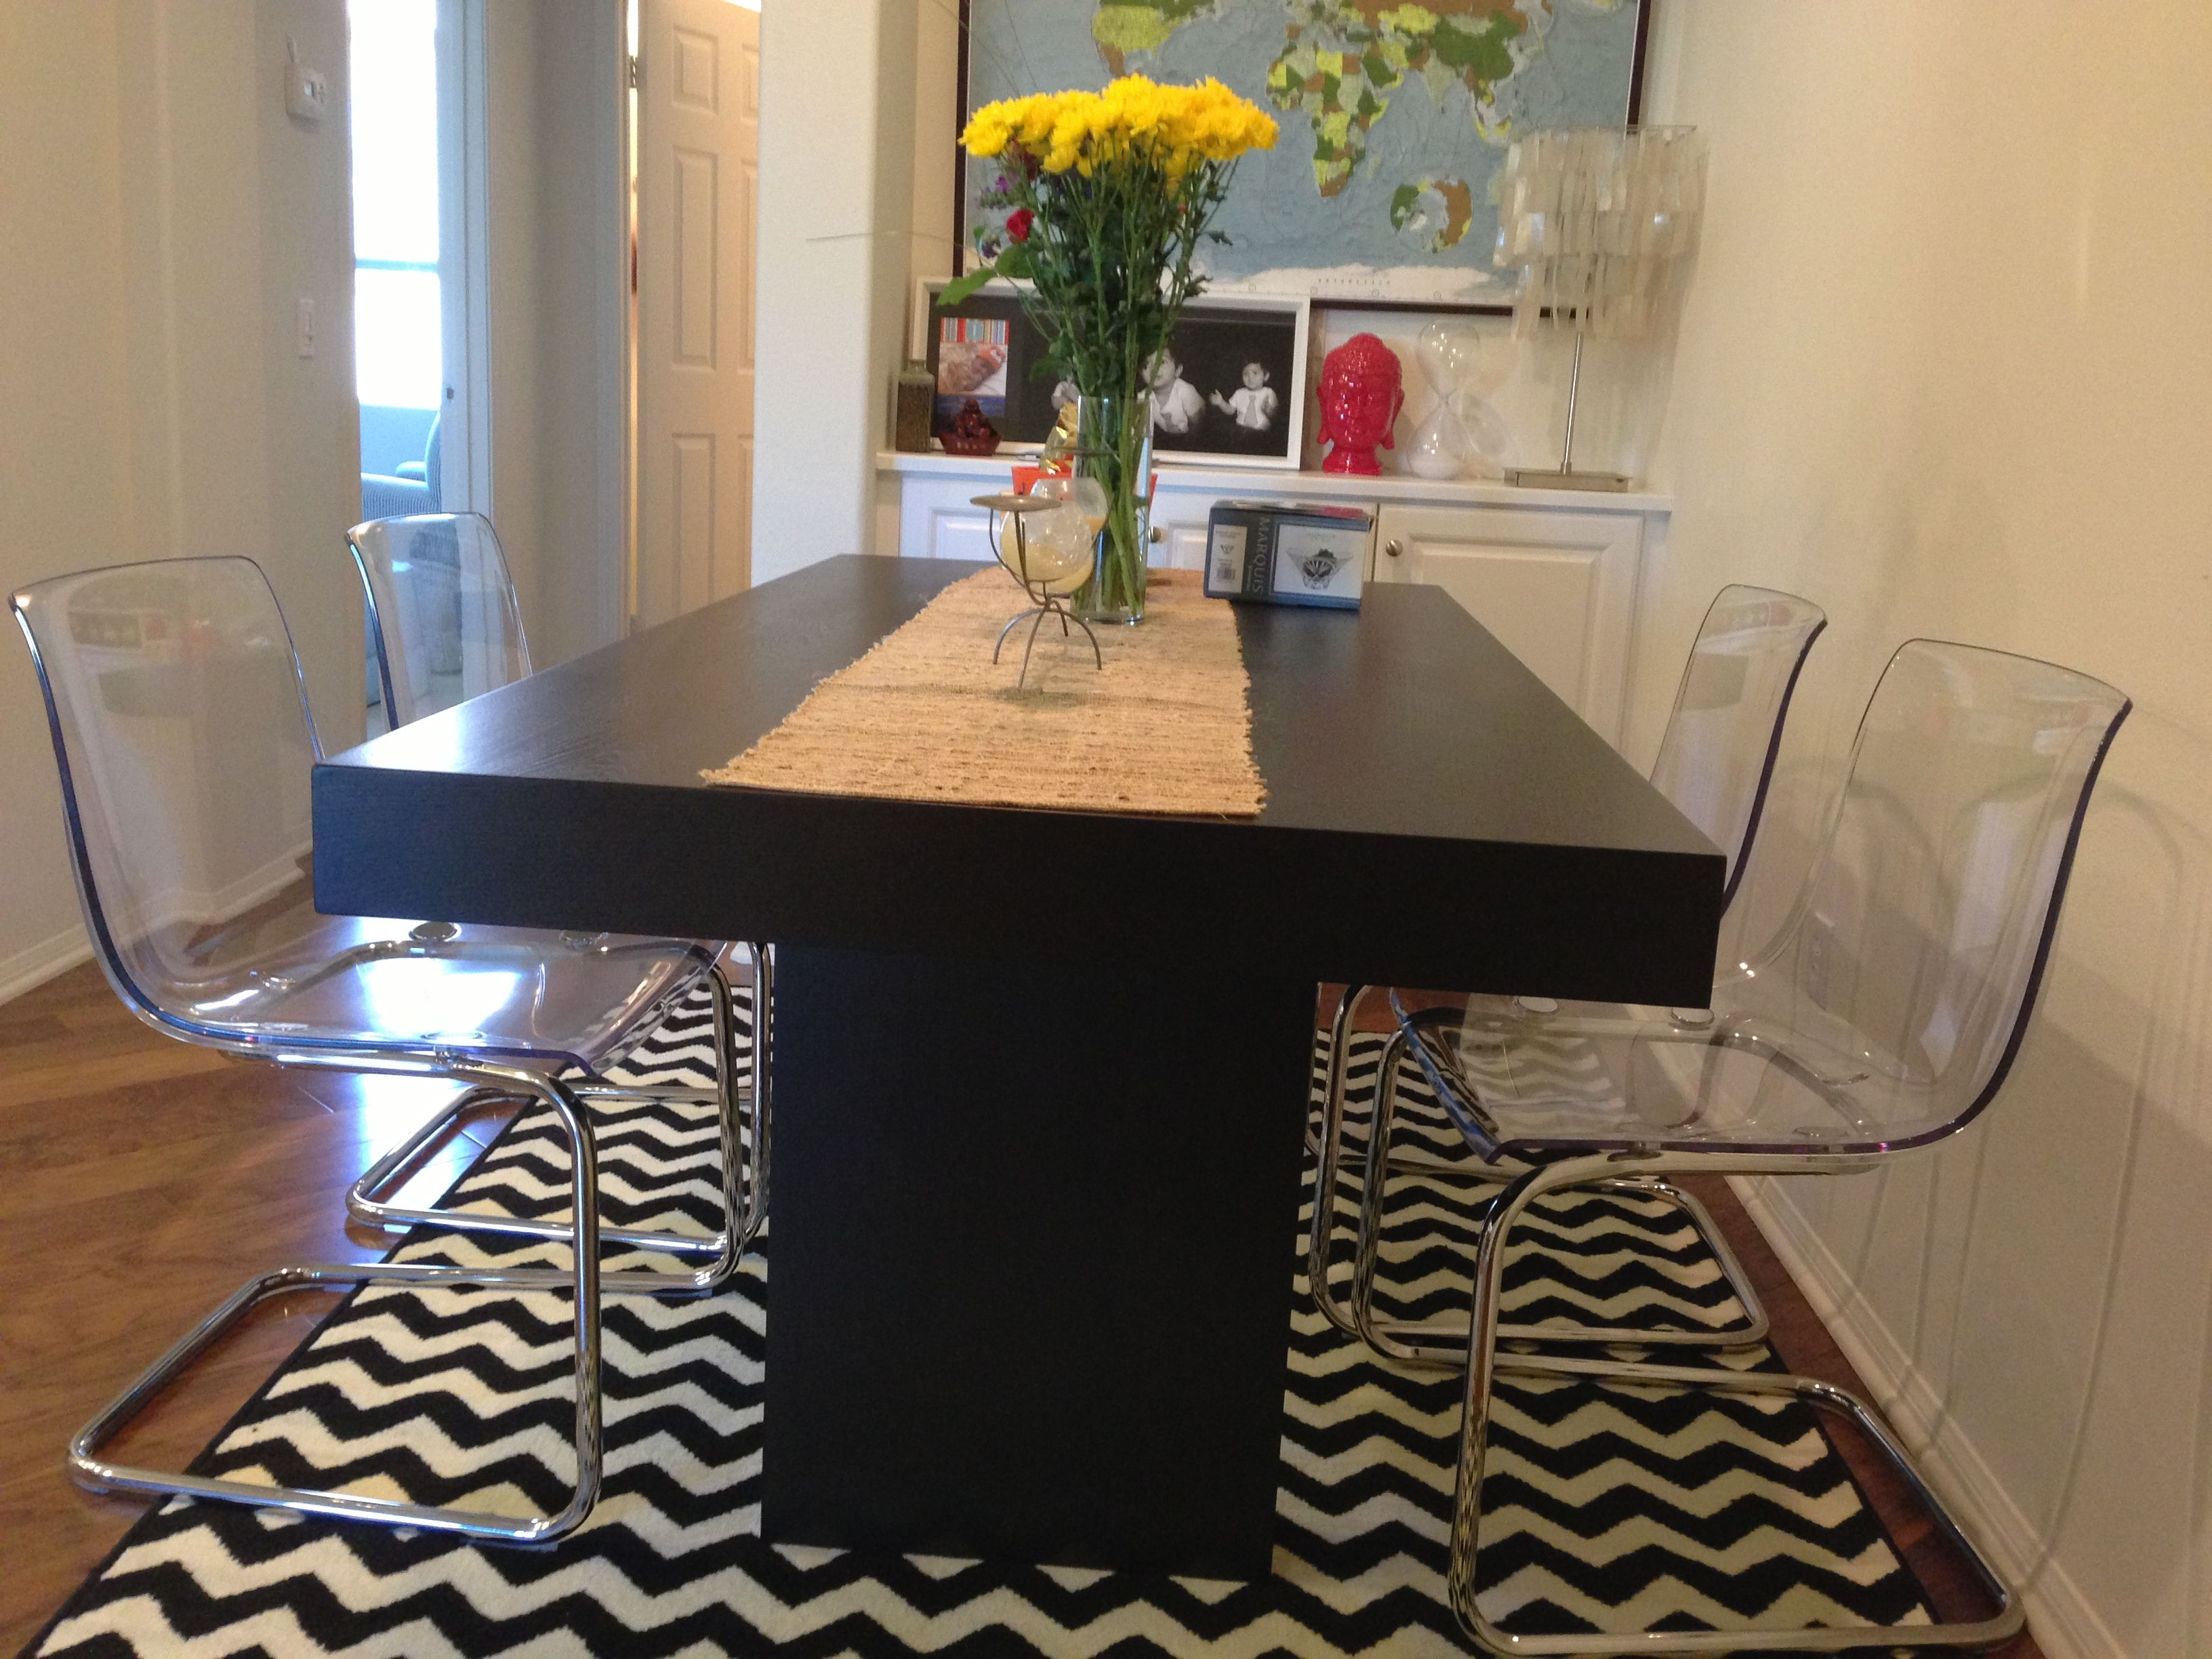 Acrylic chairs ikea - Modern Dining Room Acrylic Chairs From Ikea And Wooden Table From West Elm